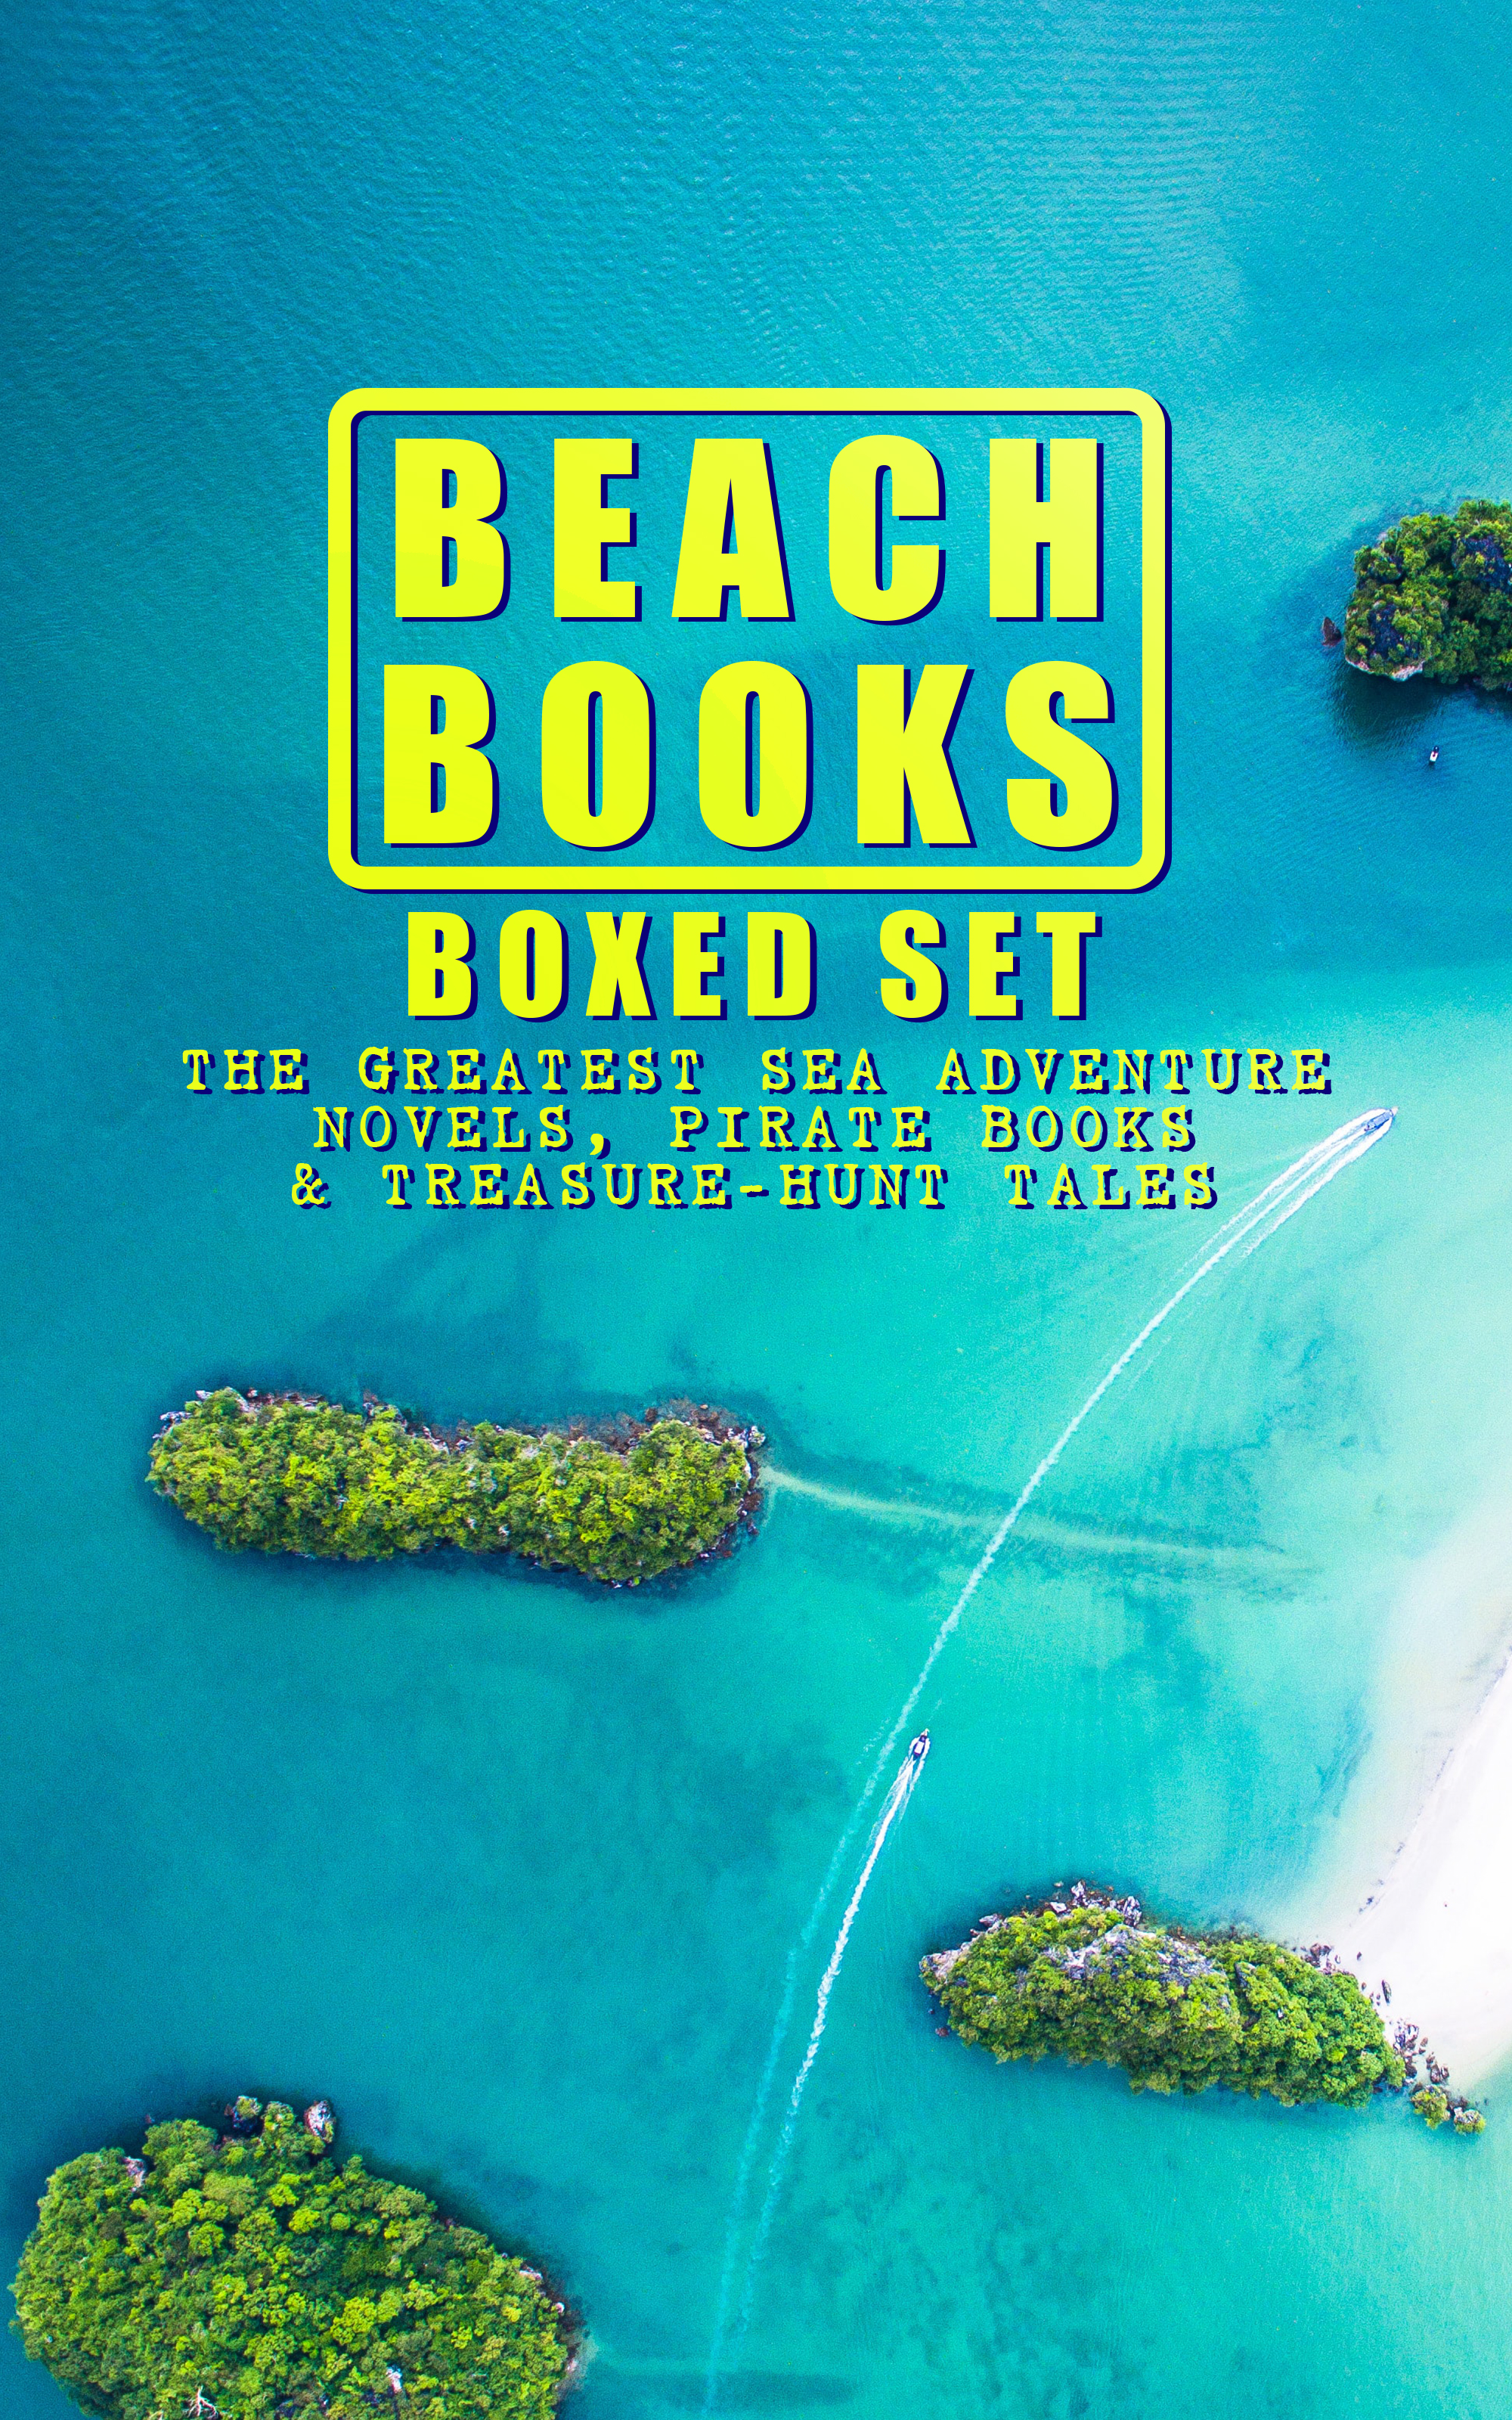 Джеймс Фенимор Купер BEACH BOOKS Boxed Set: The Greatest Sea Adventure Novels, Pirate Books & Treasure-Hunt Tales padraic colum the children s homer the adventures of odysseus and the tale of troy